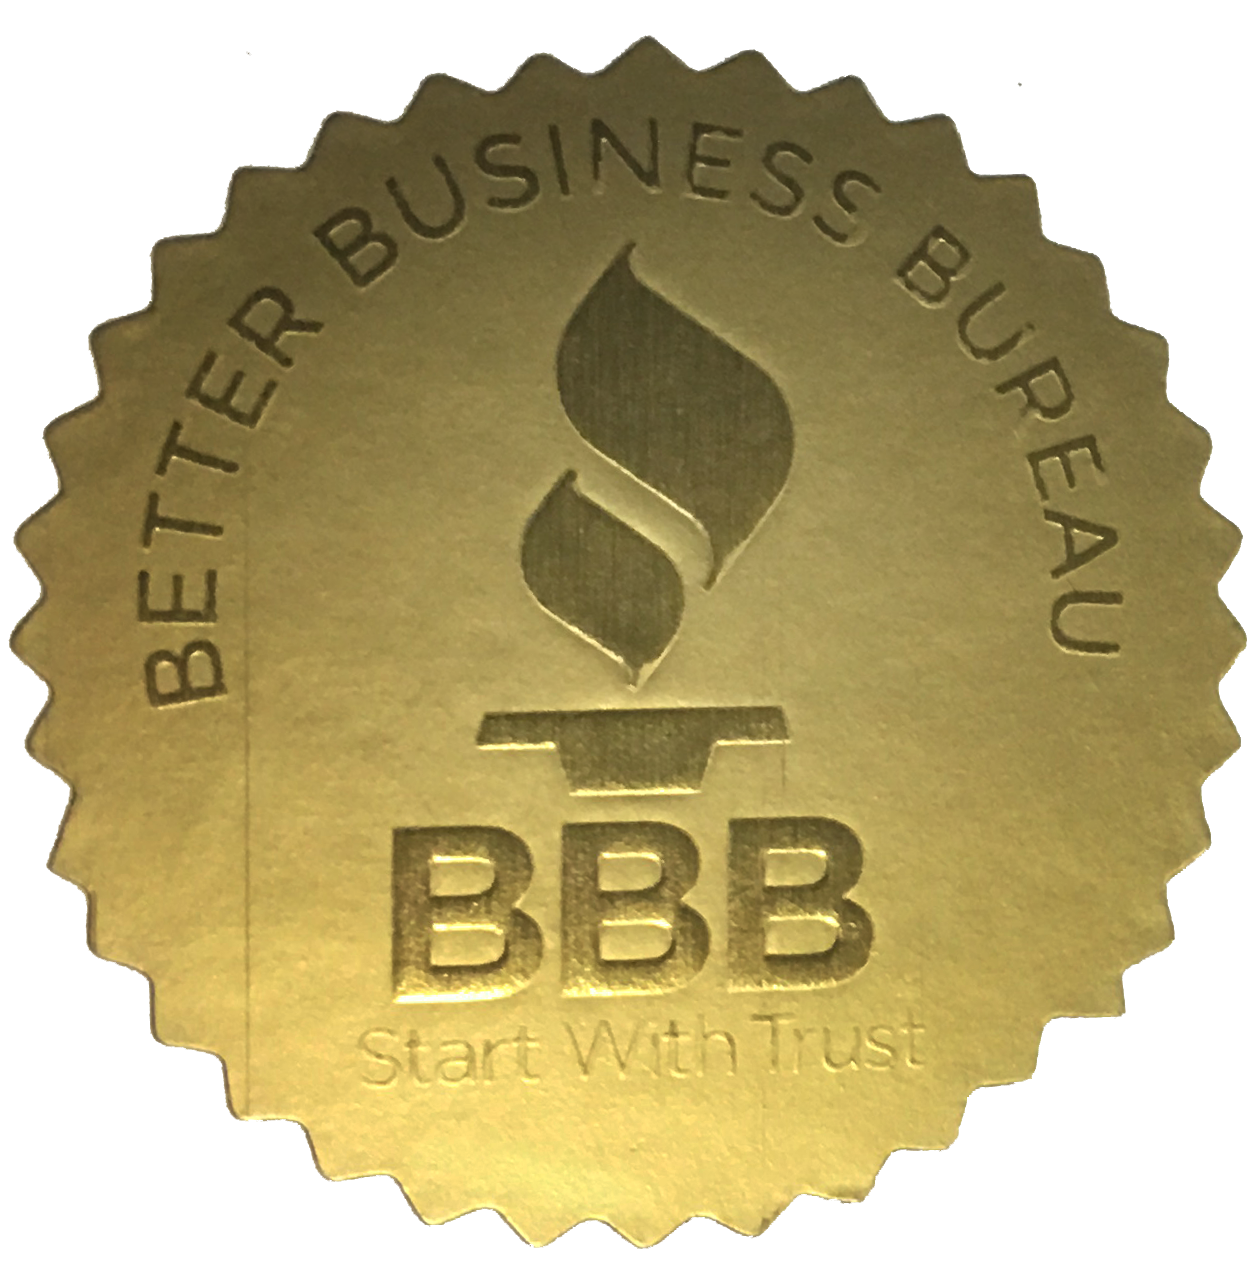 Better Business Bureau Accredited Business Stamp for American Management Services